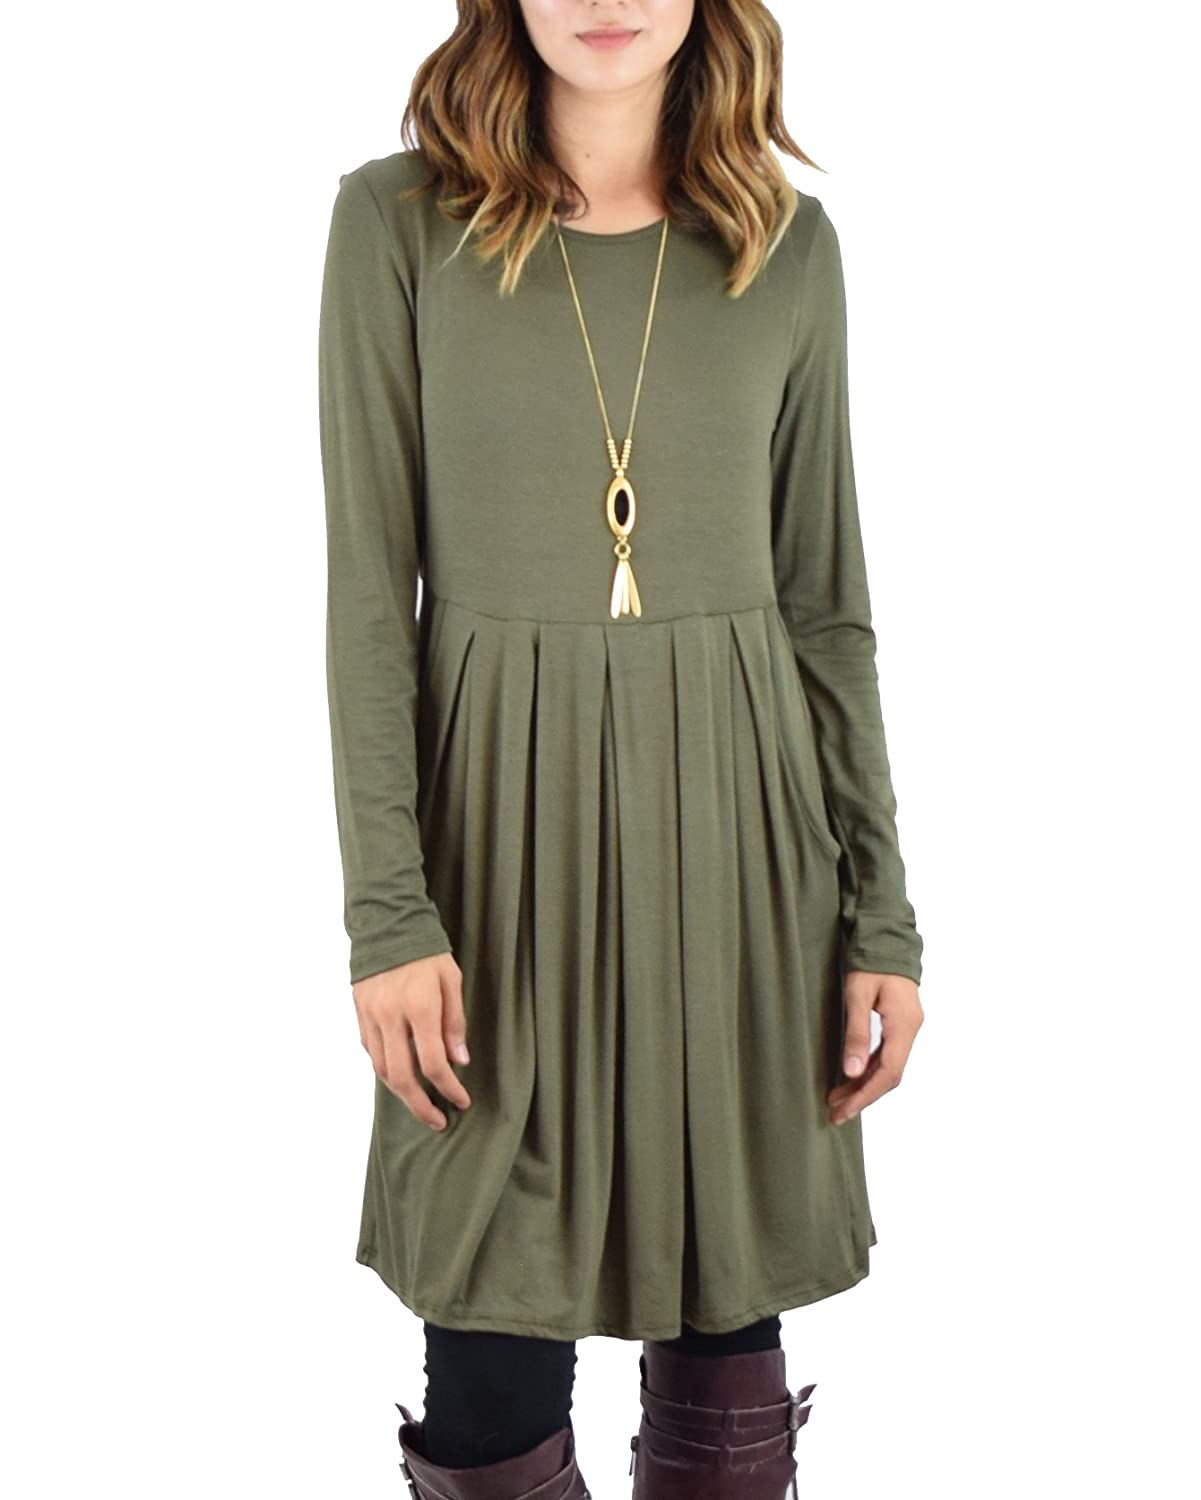 Green Ivay Women's Long Sleeve Pleated Swing Dress Casual T Shirt Dress with Pockets